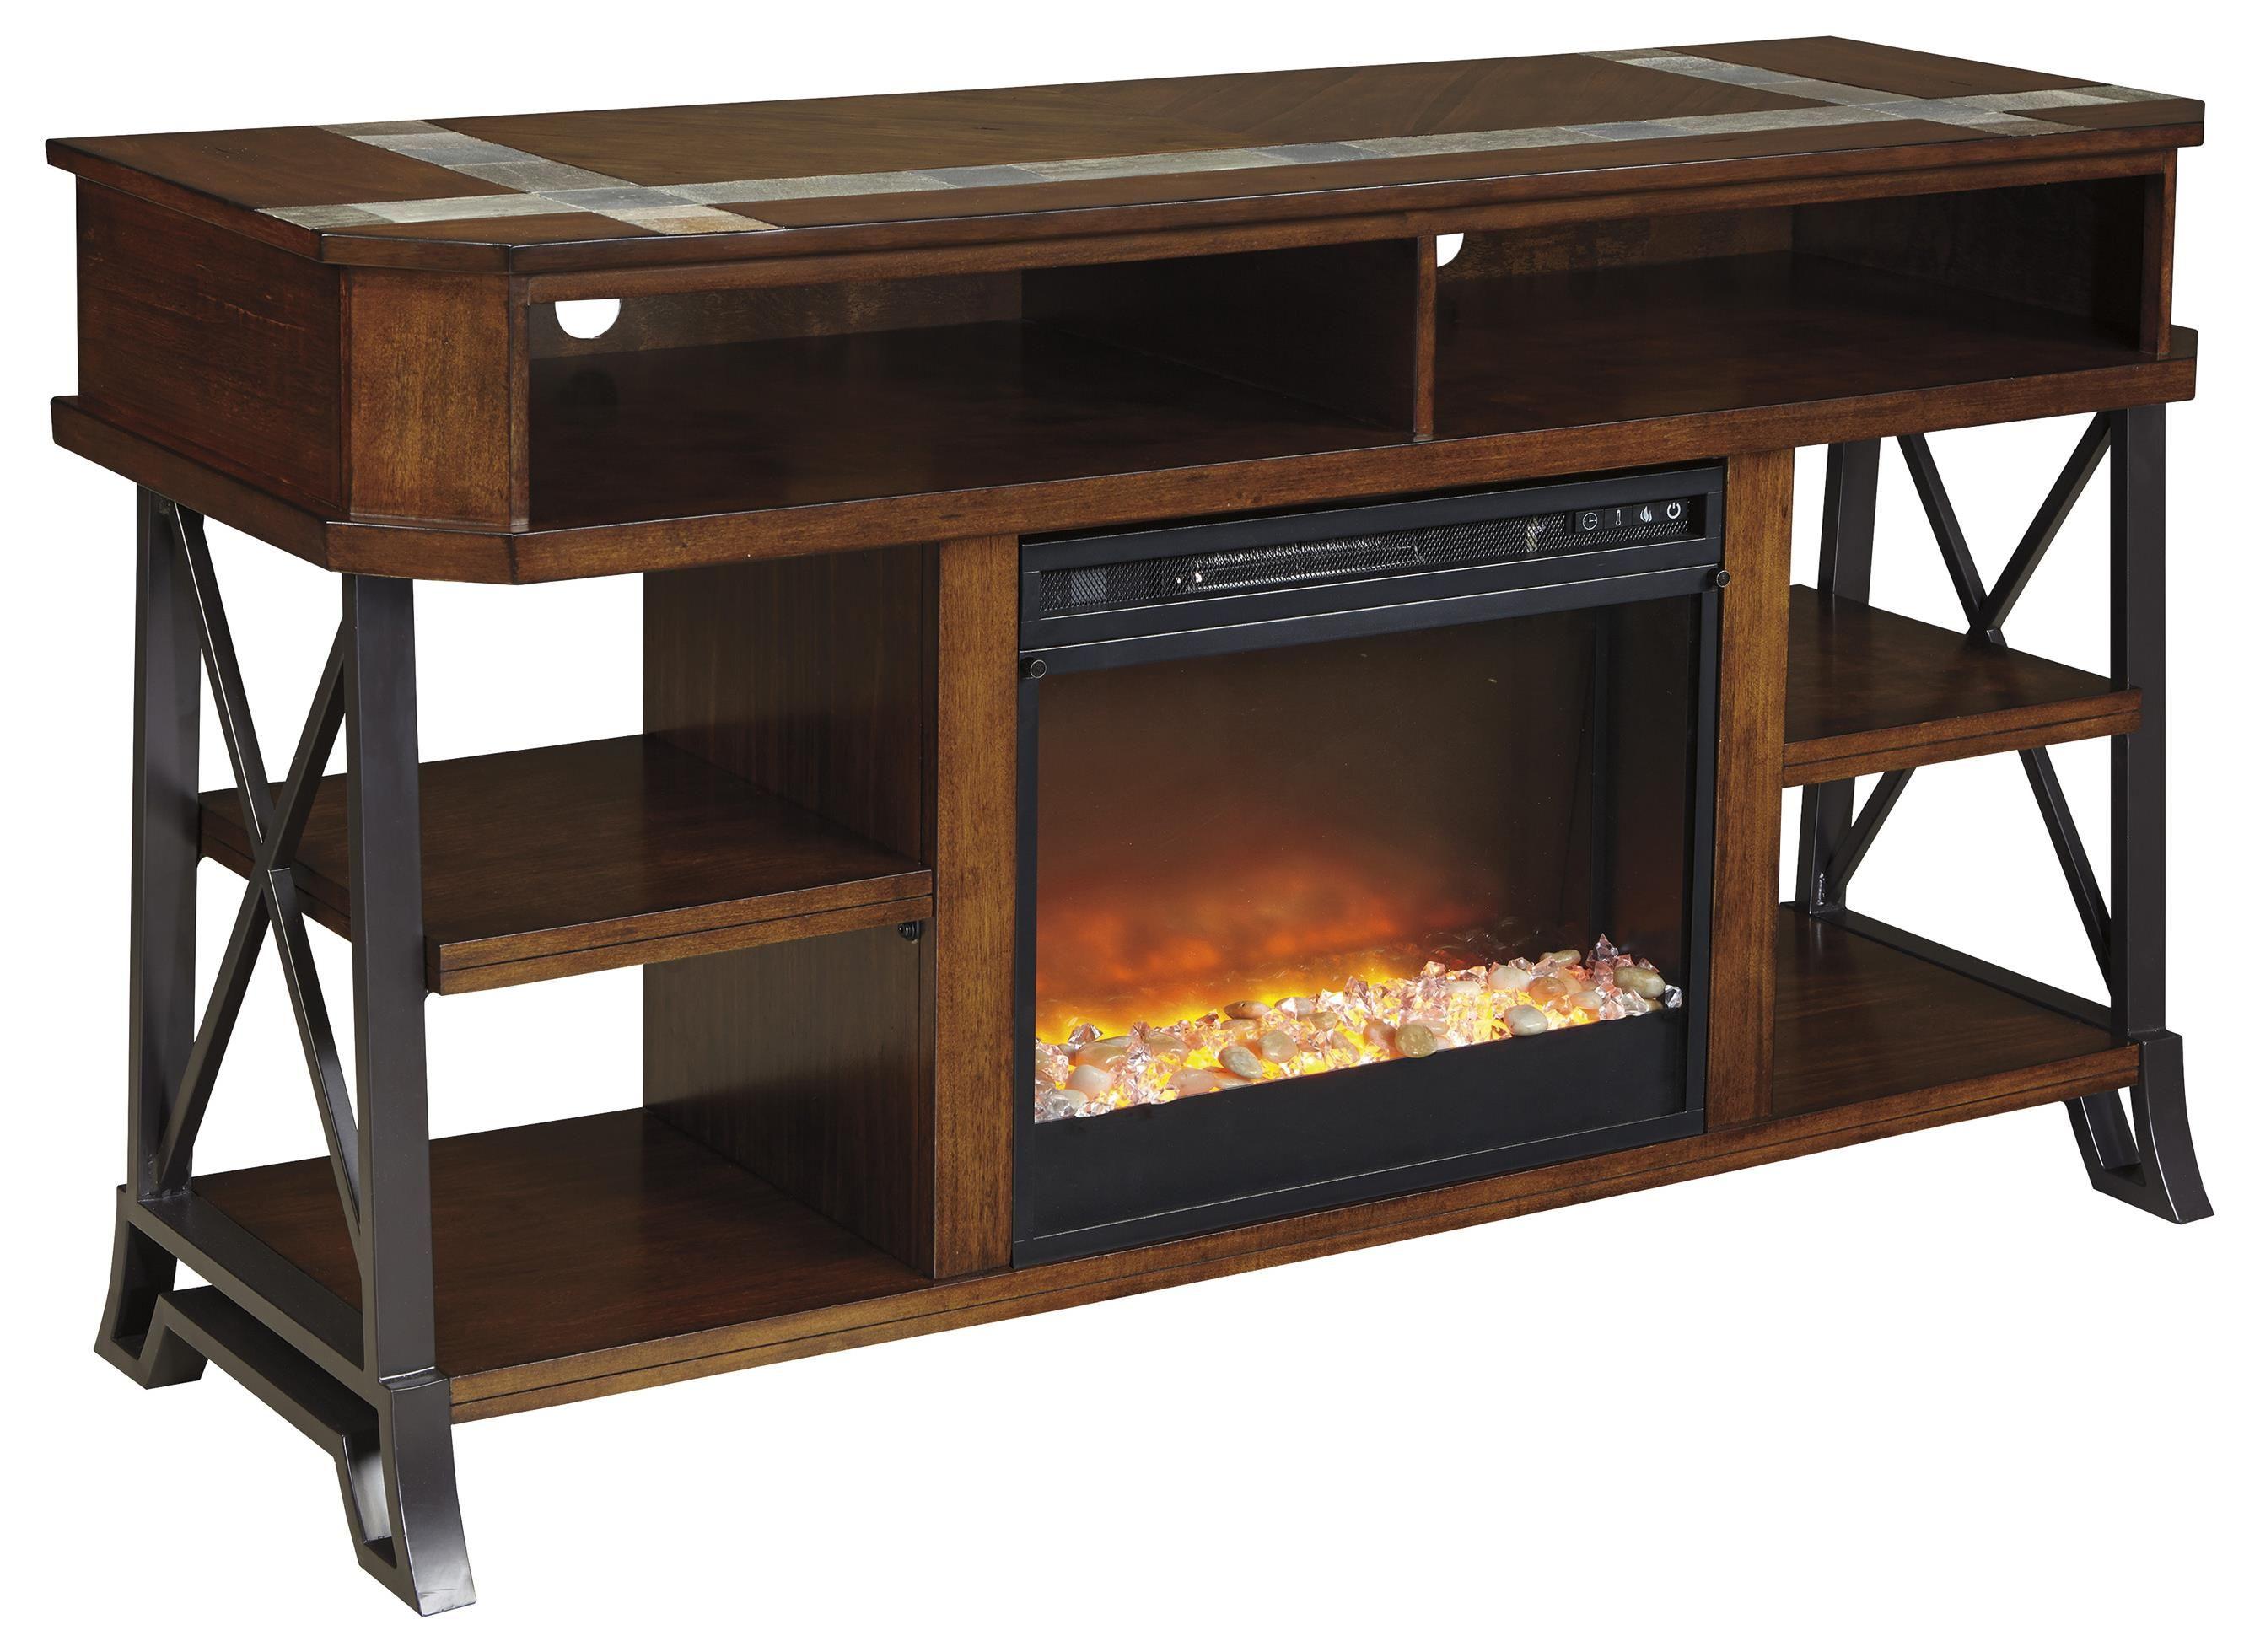 Super Vinasville Tv Stand With Fireplace Insert By Signature Complete Home Design Collection Barbaintelli Responsecom